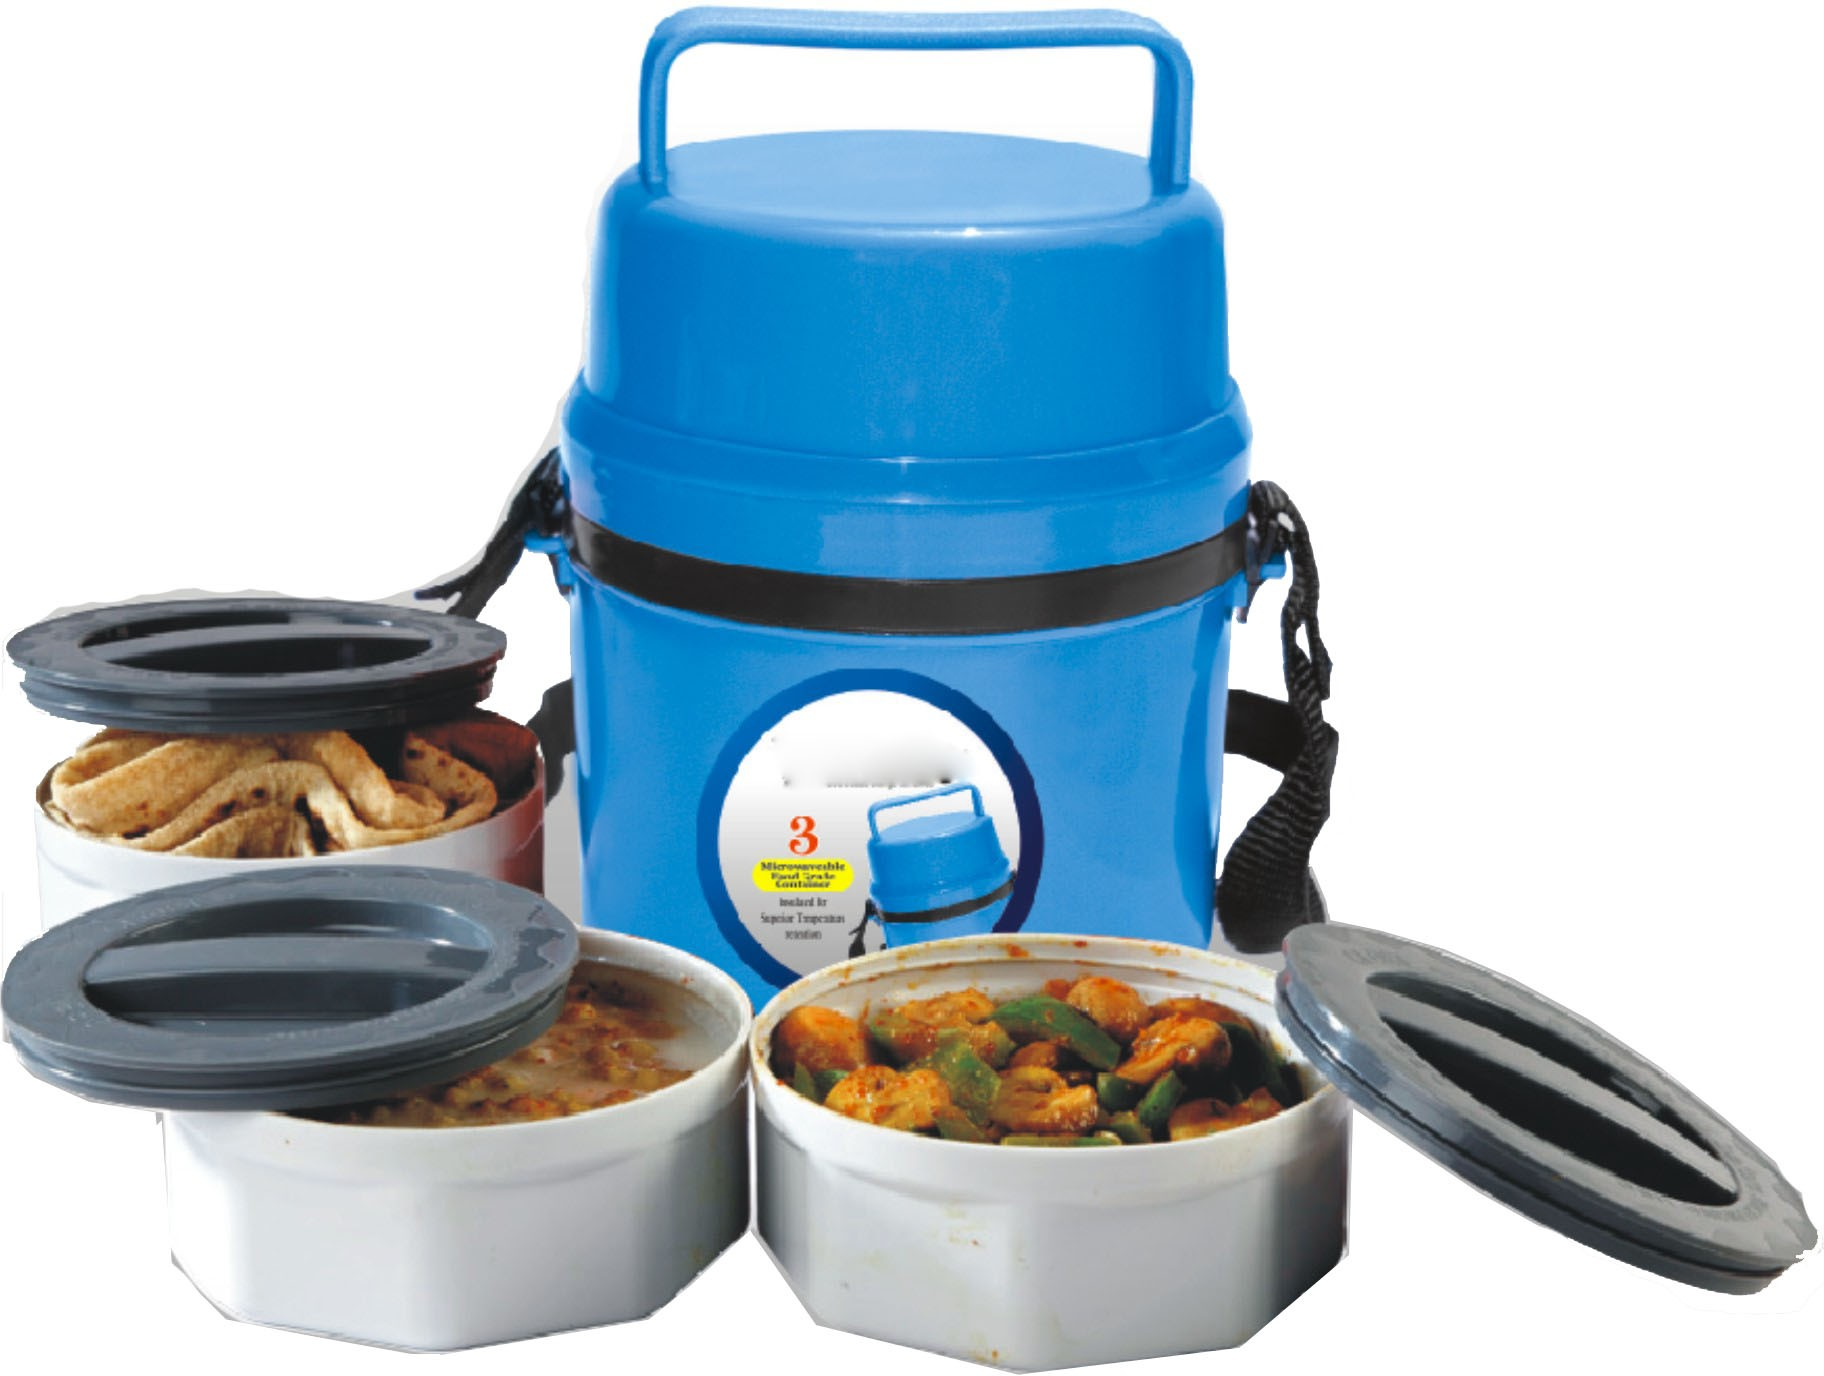 41 off on king international microwave lunch box 3 containers lunch box on flipkart paisawapas com